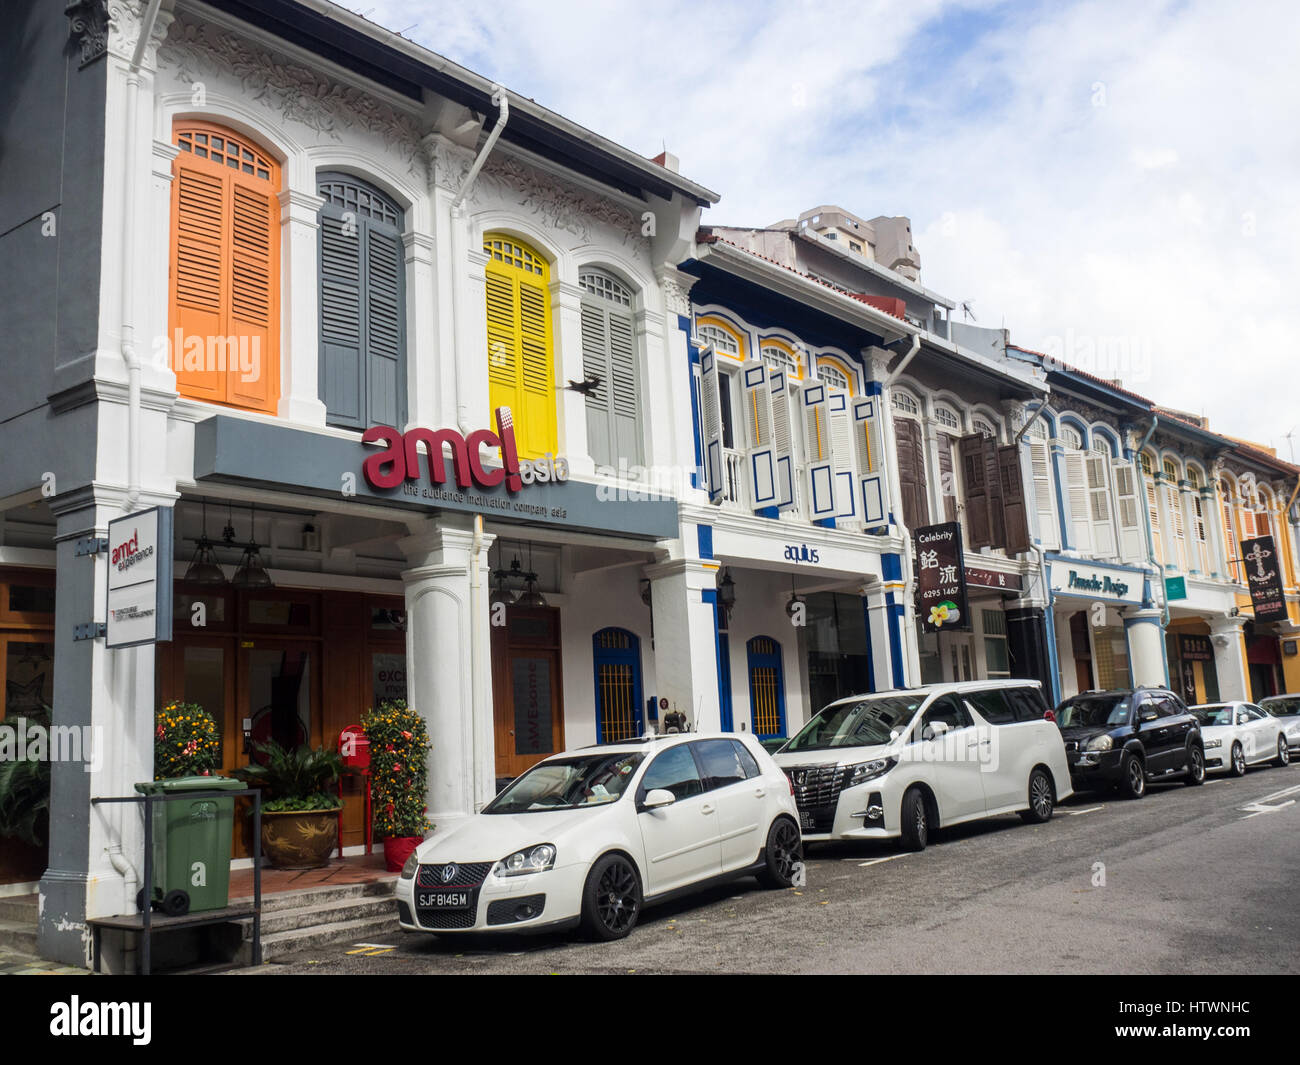 Typical Singaporean street lined with traditional shophouses in Rochor. - Stock Image